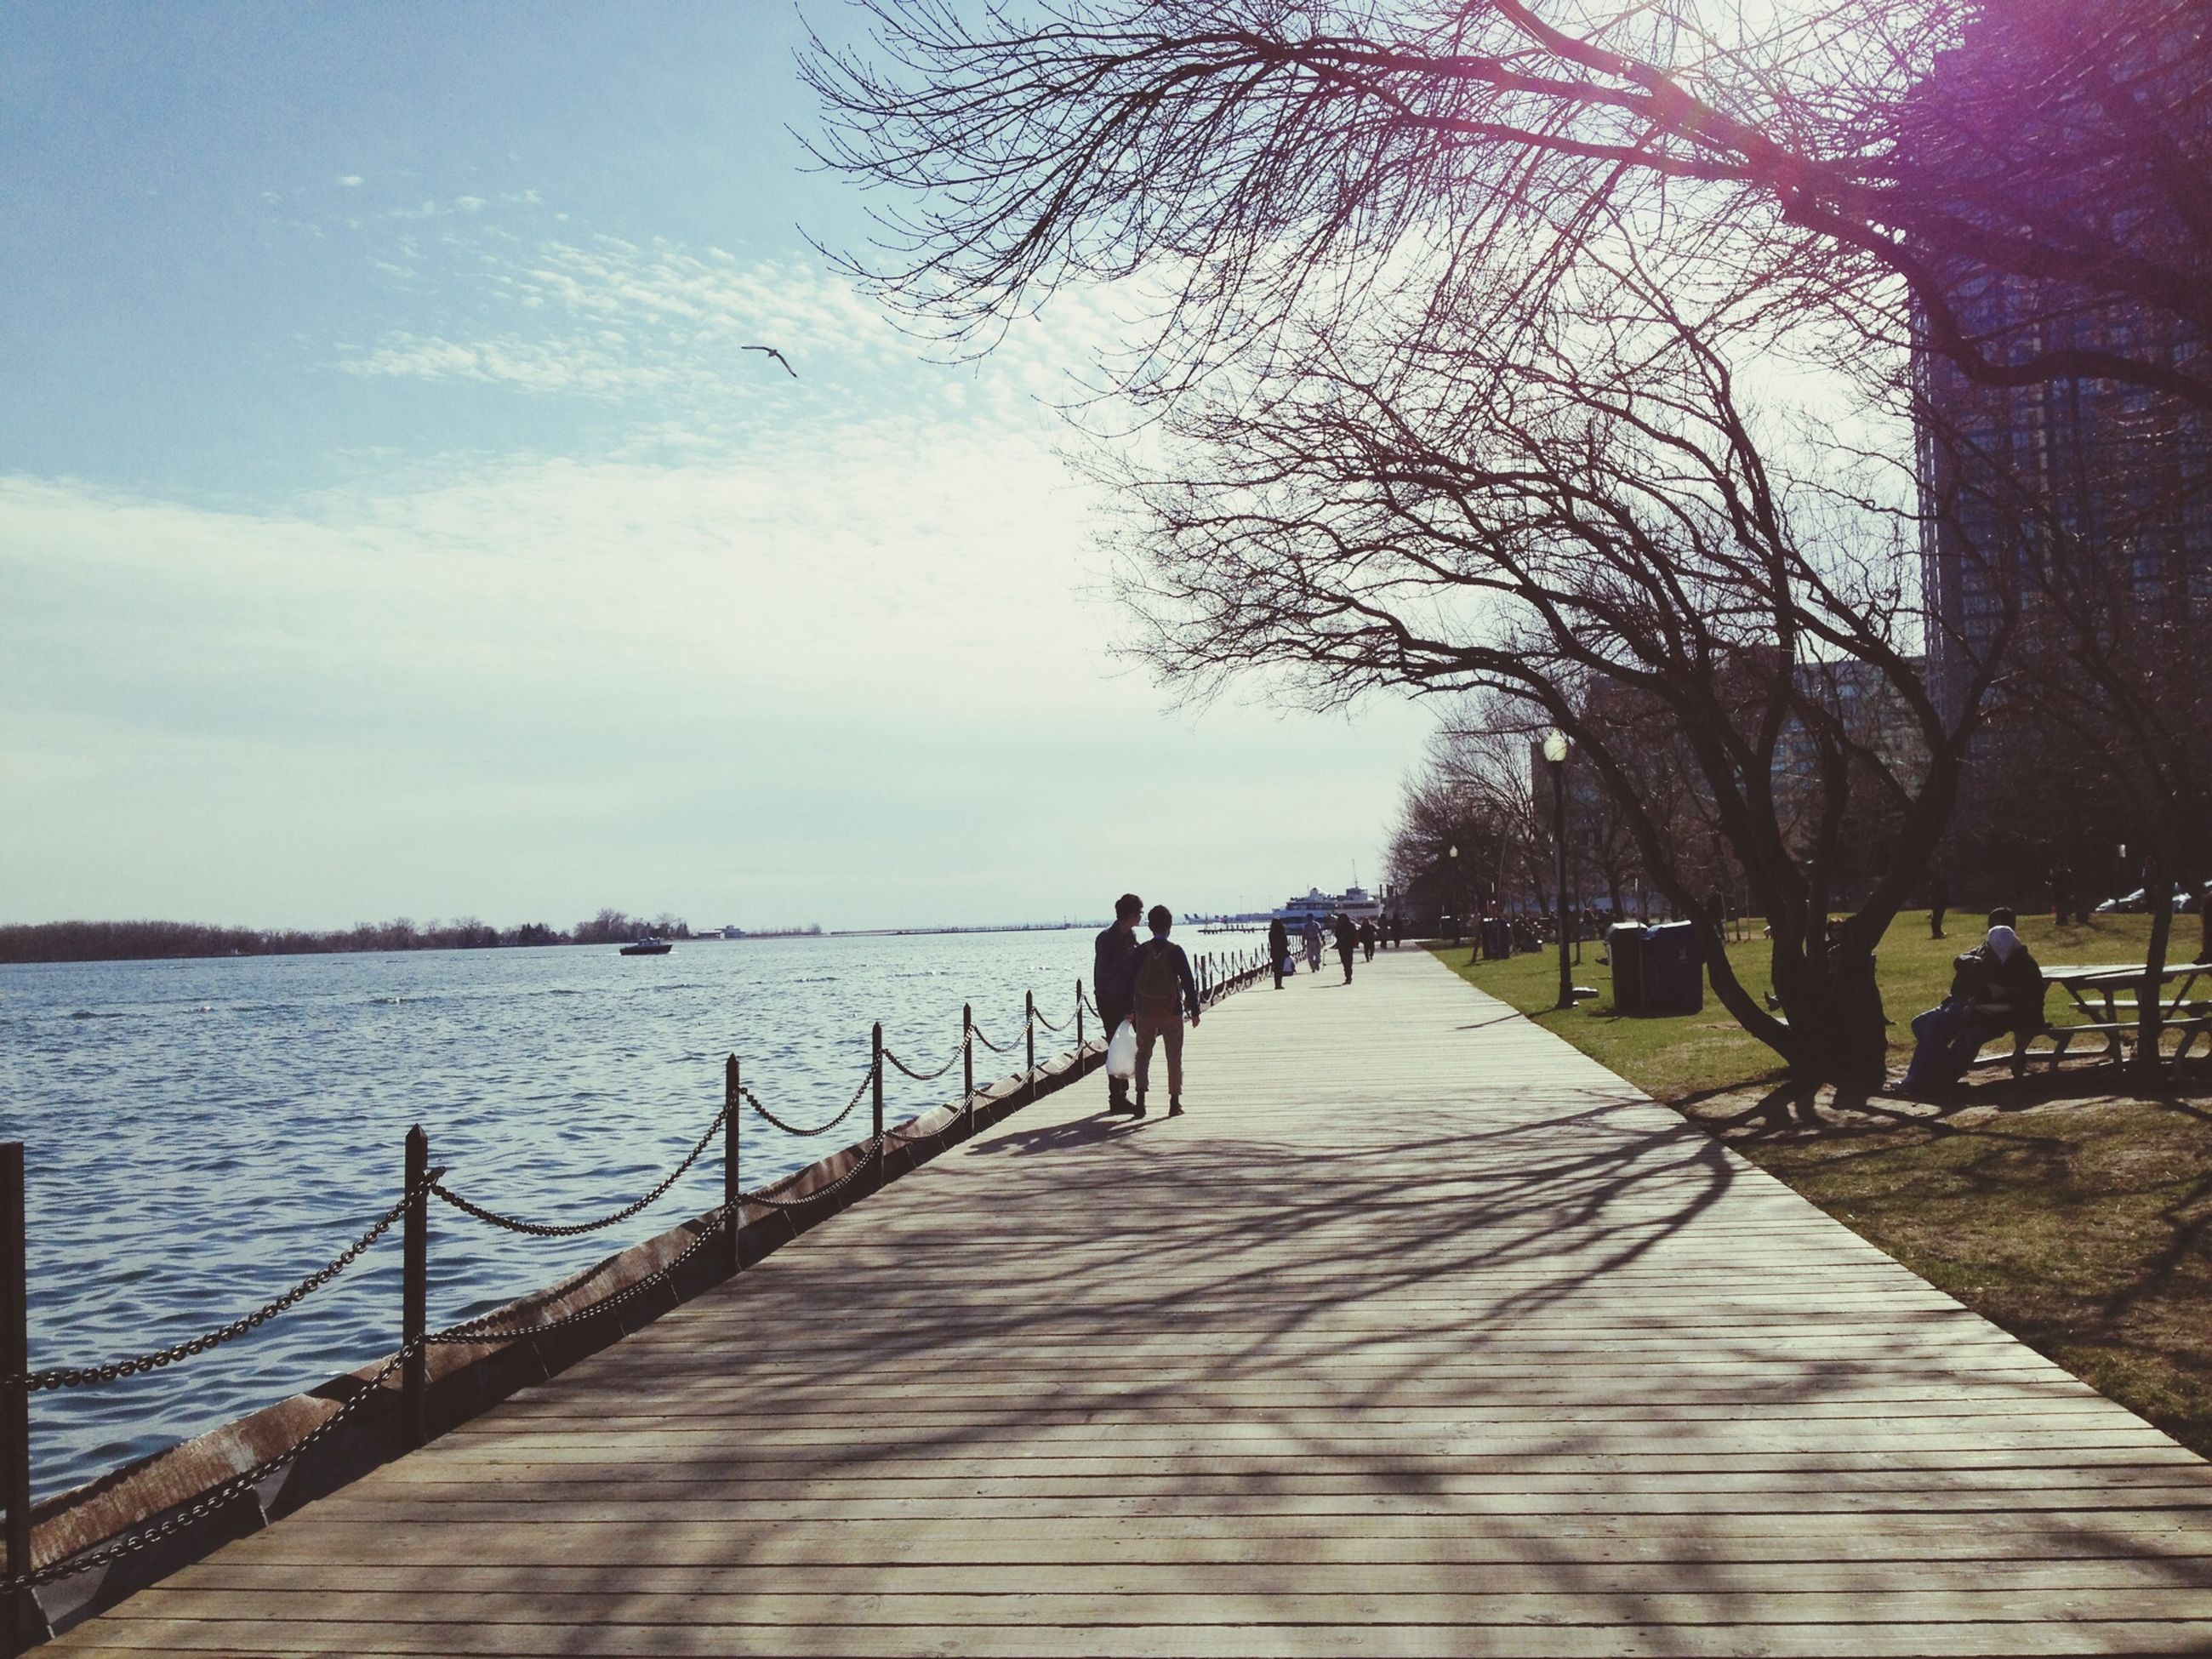 the way forward, rear view, water, full length, tree, walking, lifestyles, men, leisure activity, sky, diminishing perspective, person, railing, walkway, footpath, tranquility, boardwalk, tranquil scene